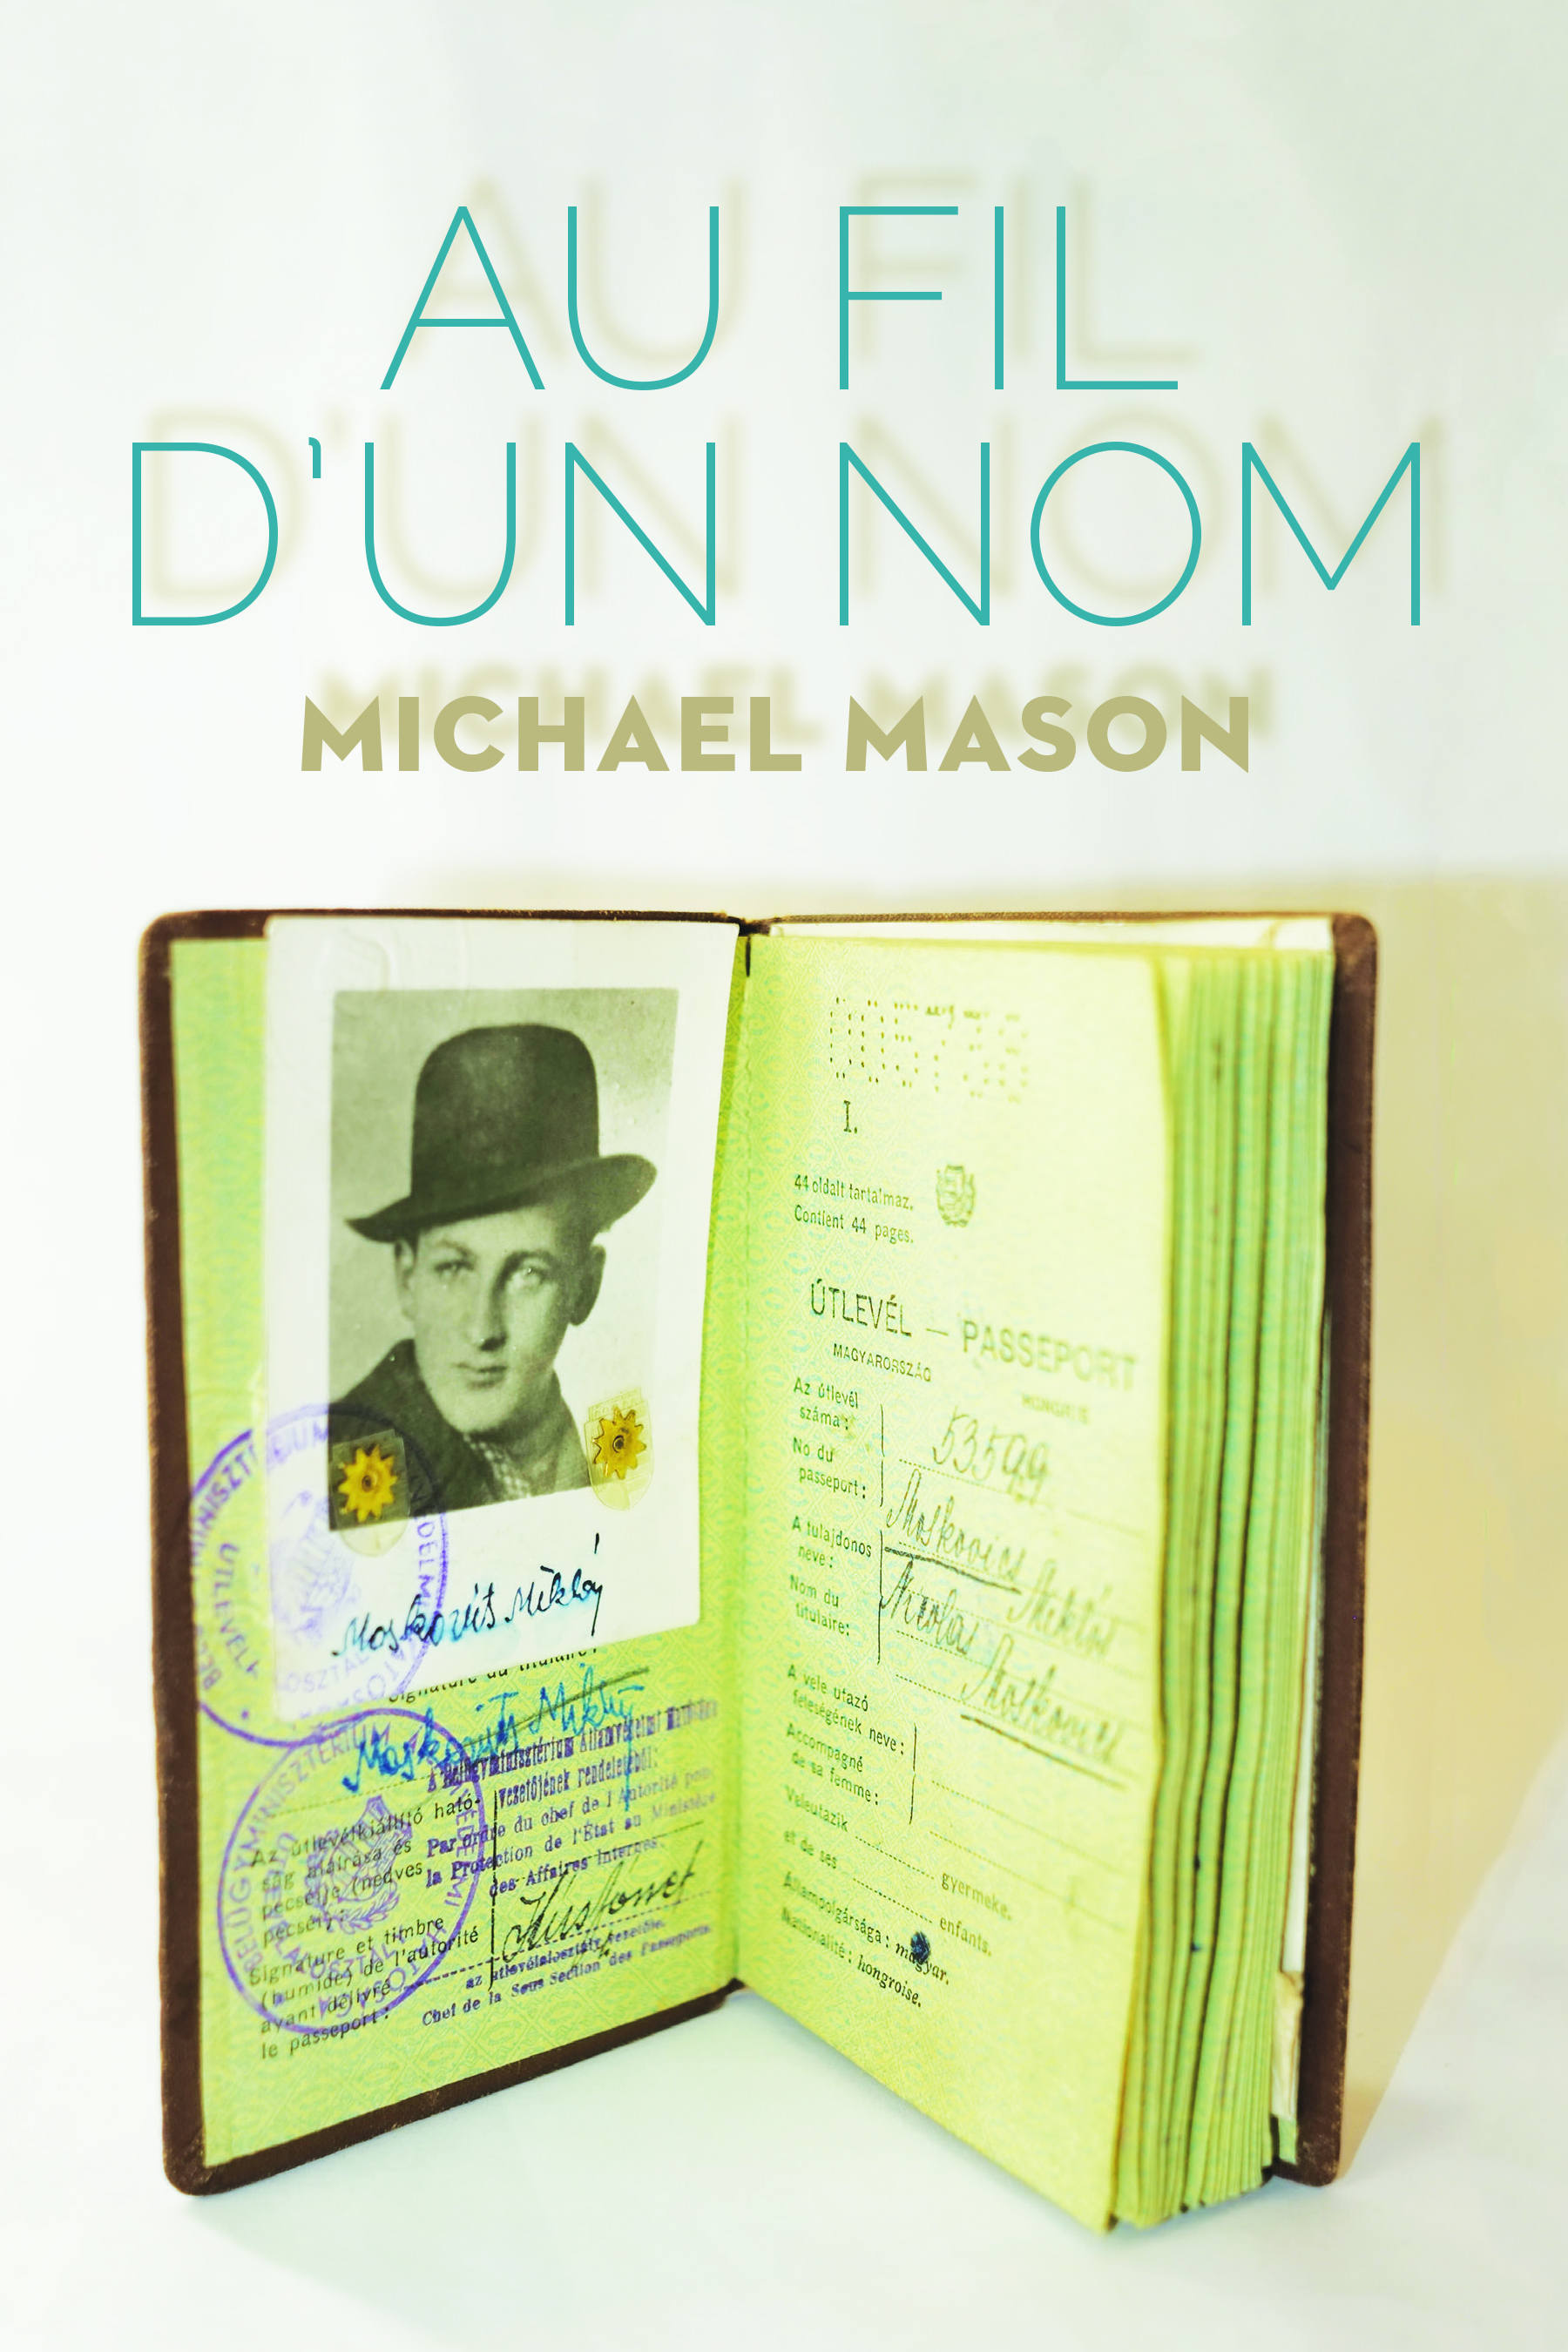 Au fil d'un nom book cover